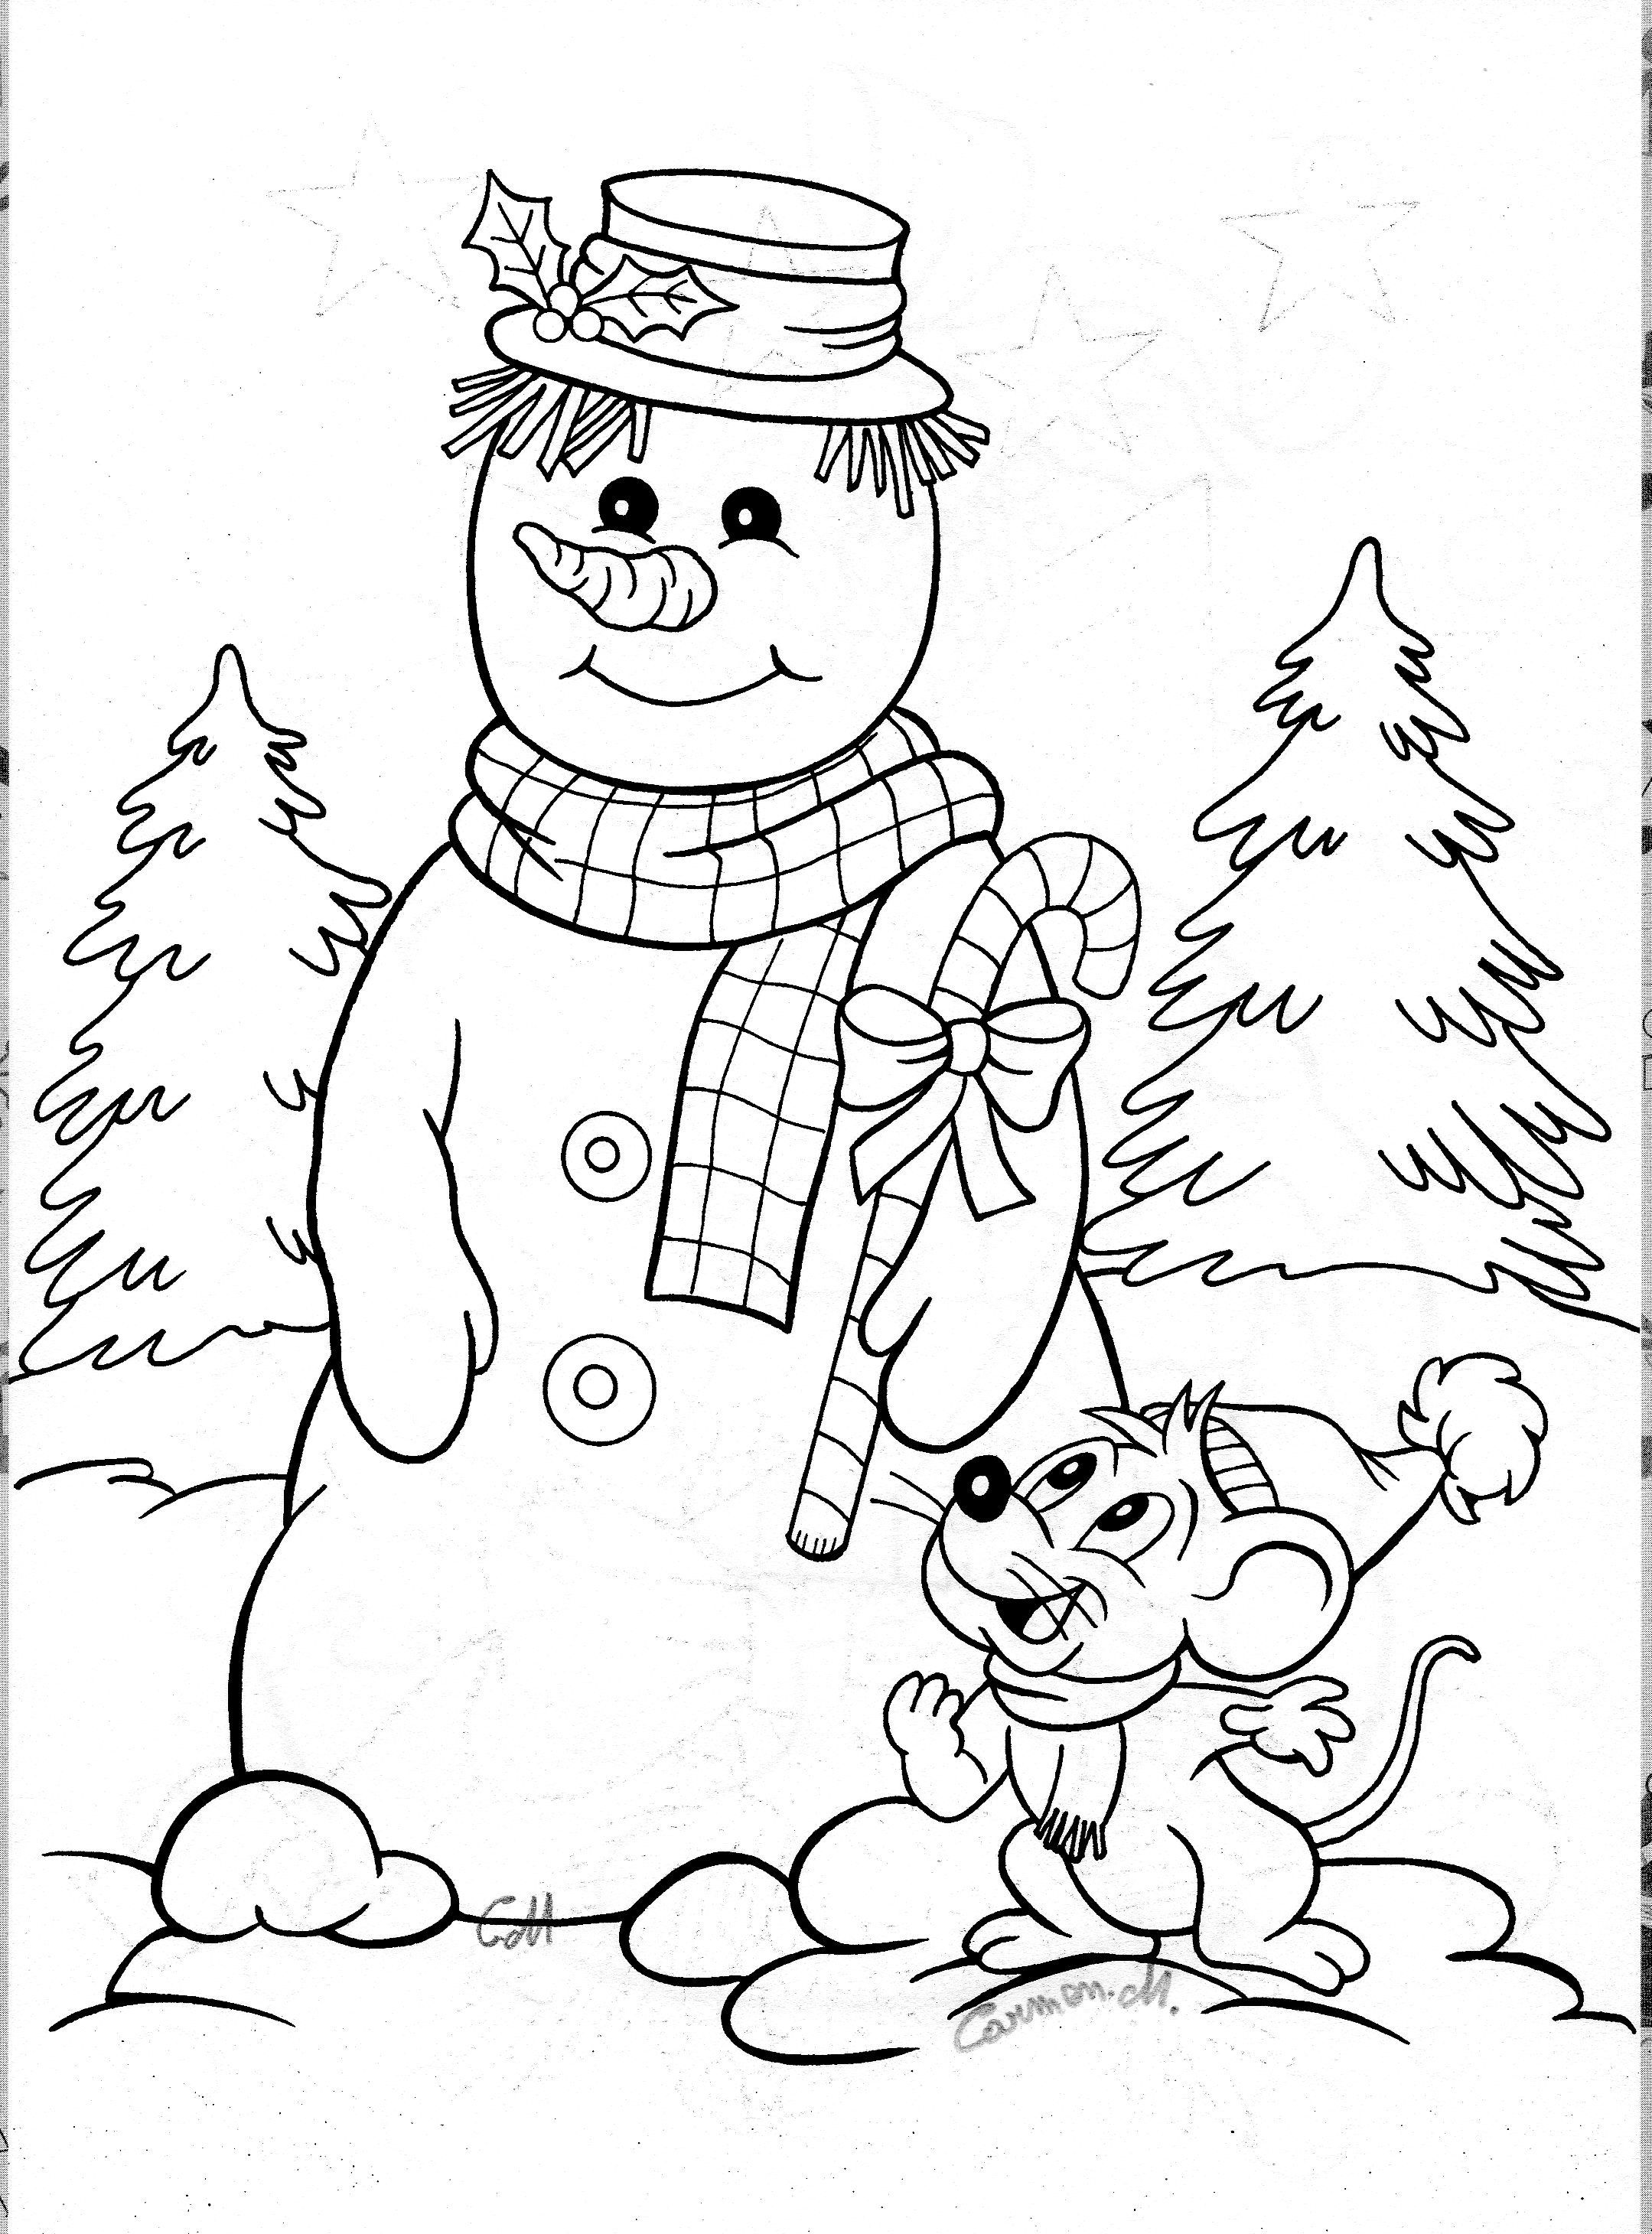 Snowman and Mouse Drawing Art Pinterest Mice and Snowman